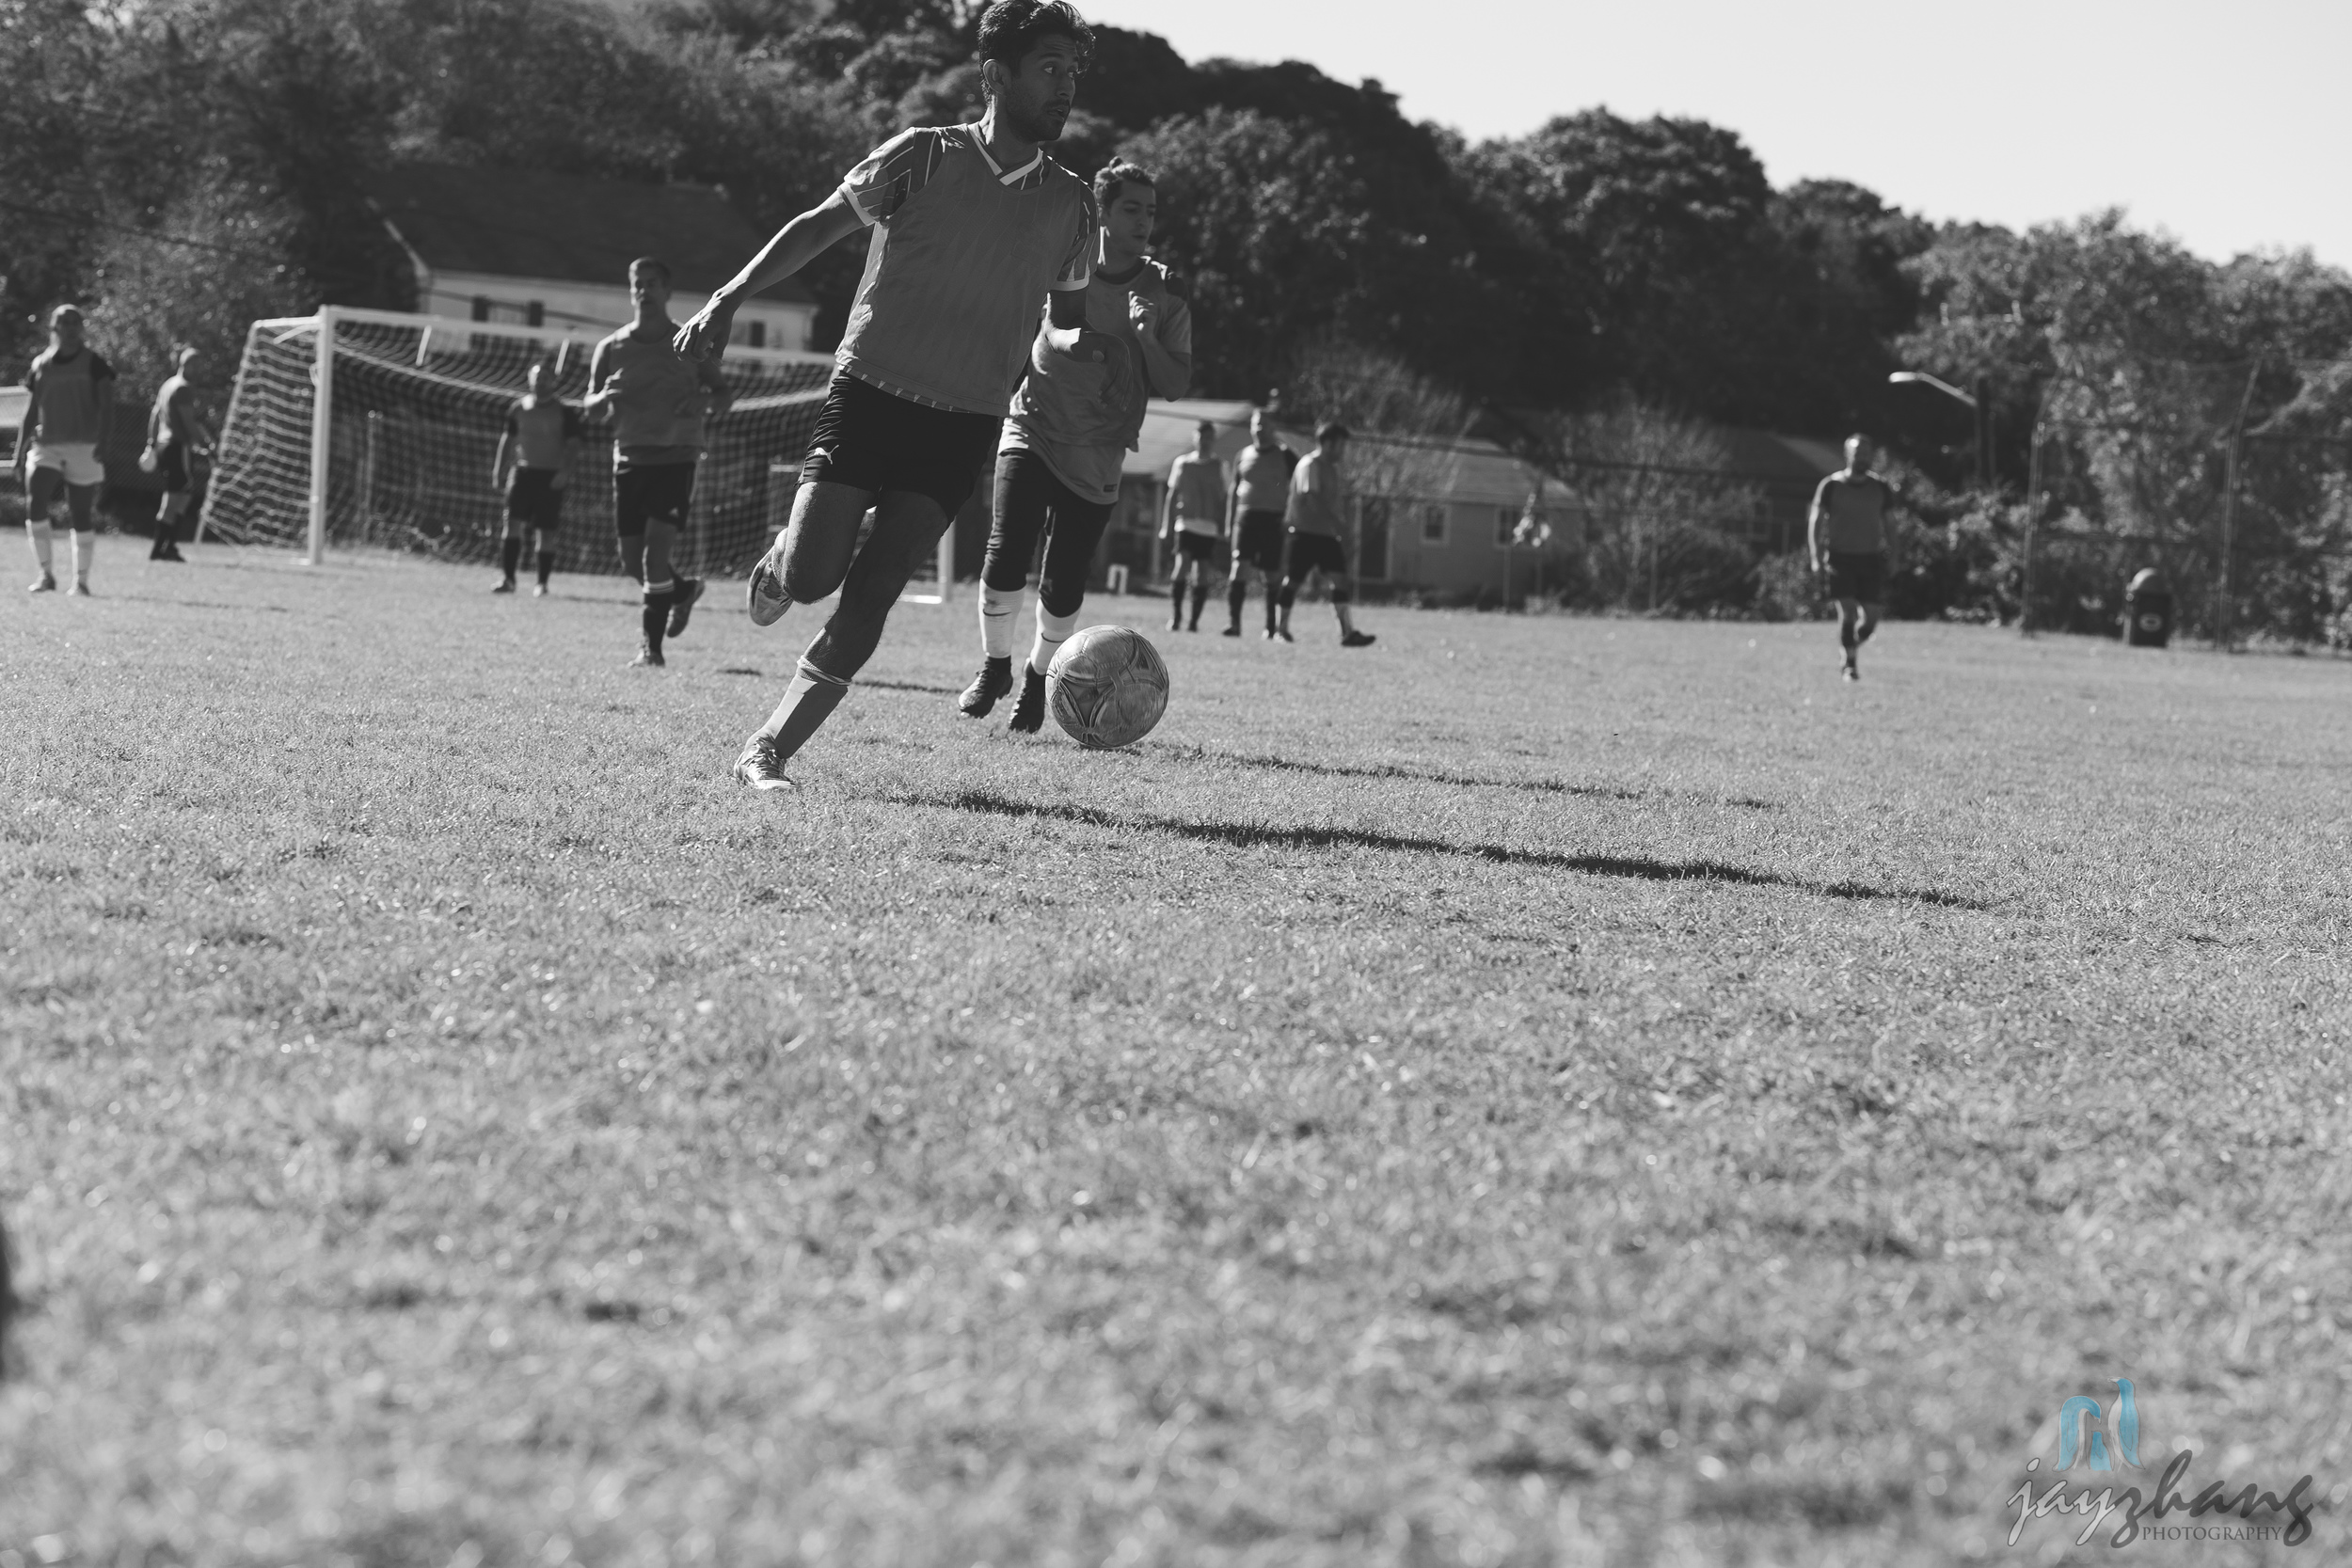 Day 288 - Ptown Soccer